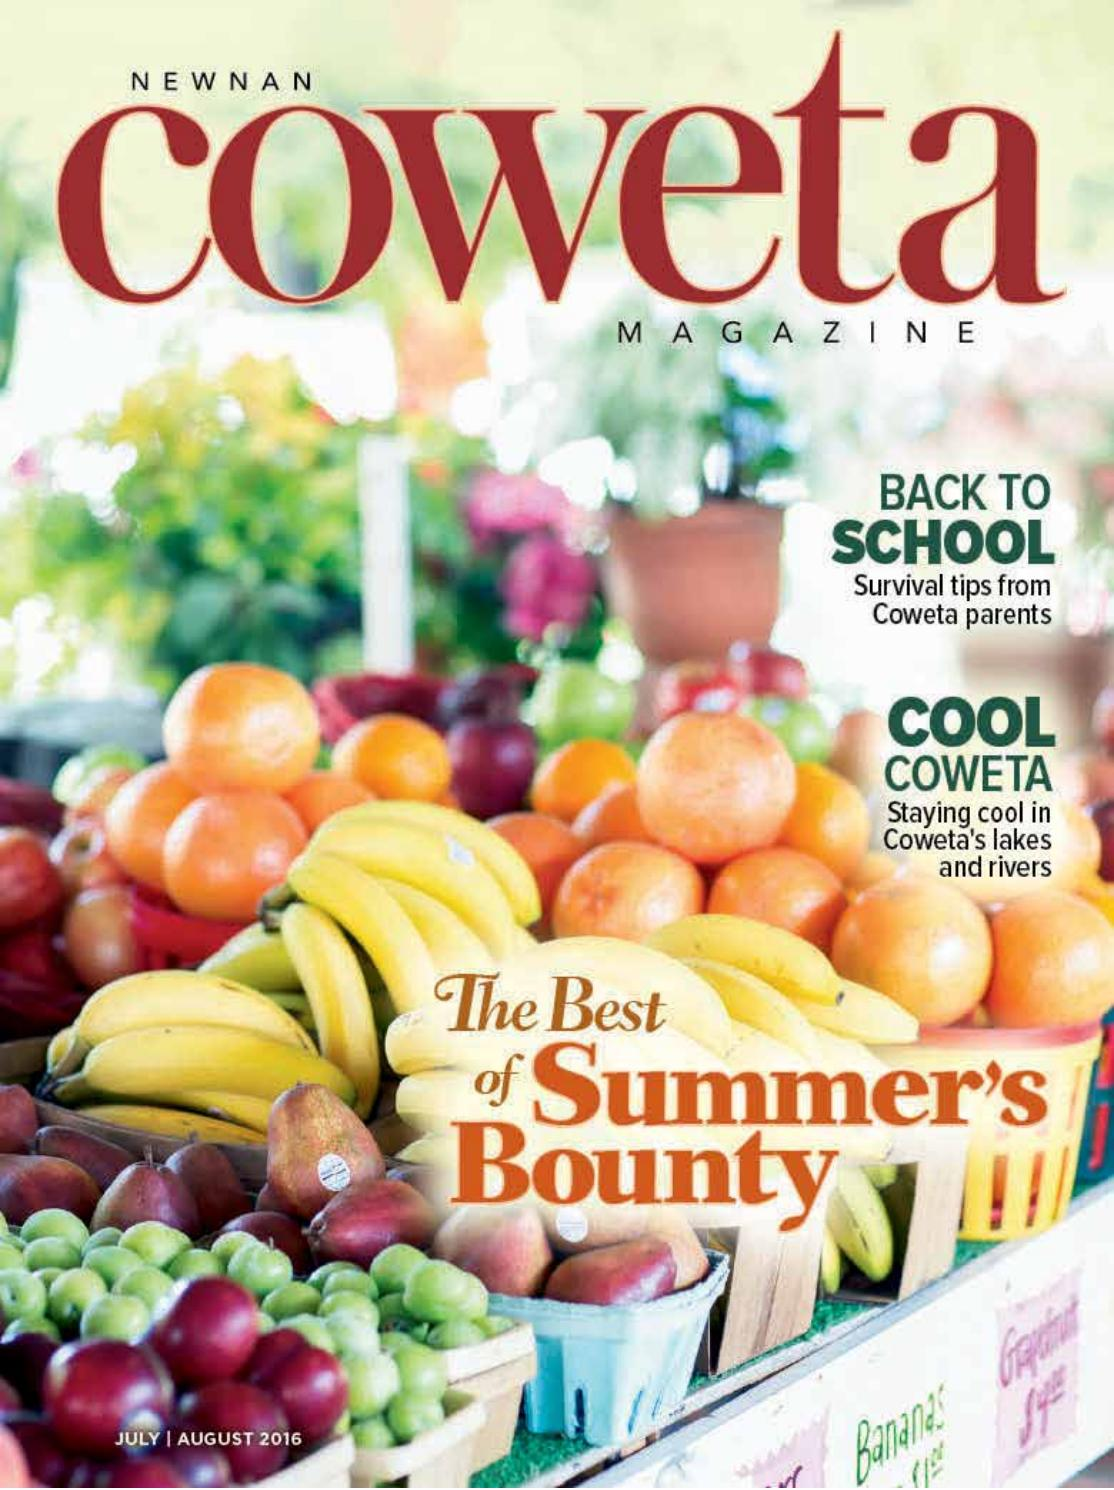 Julyaugust Newnan Coweta Magazine By The Times Herald Issuu